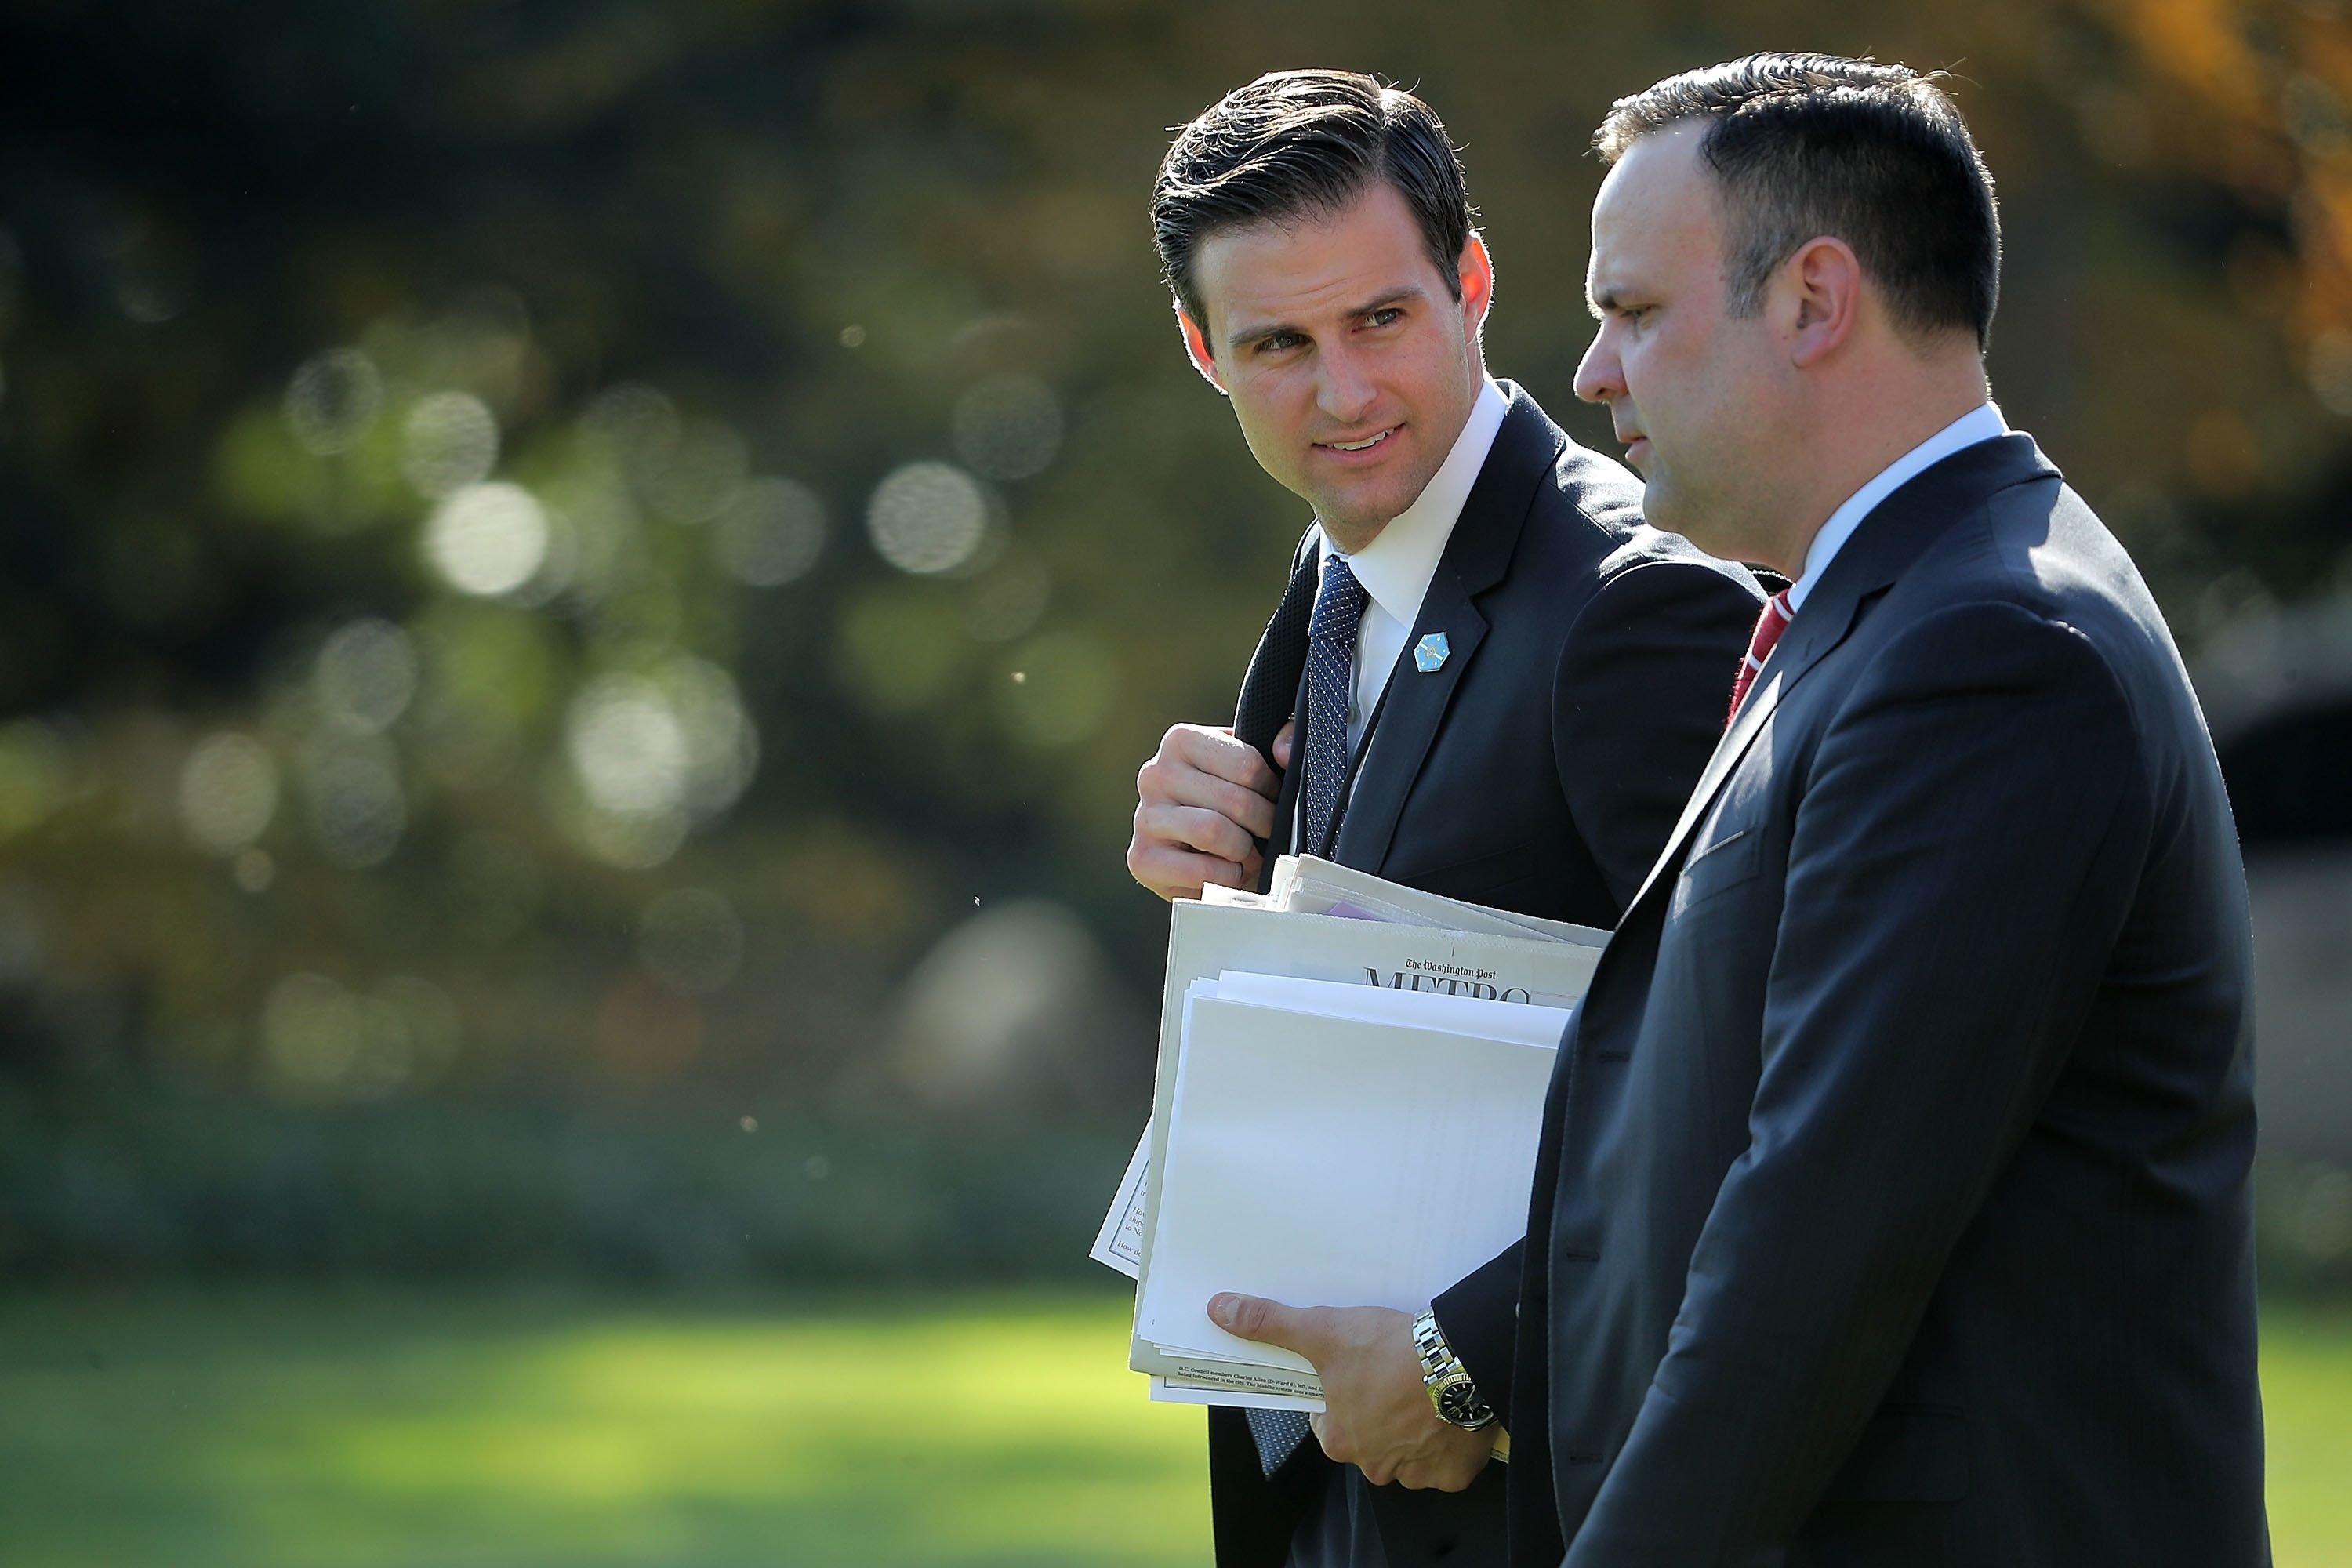 Ousted Trump aide McEntee is under investigation for 'serious financial crimes'